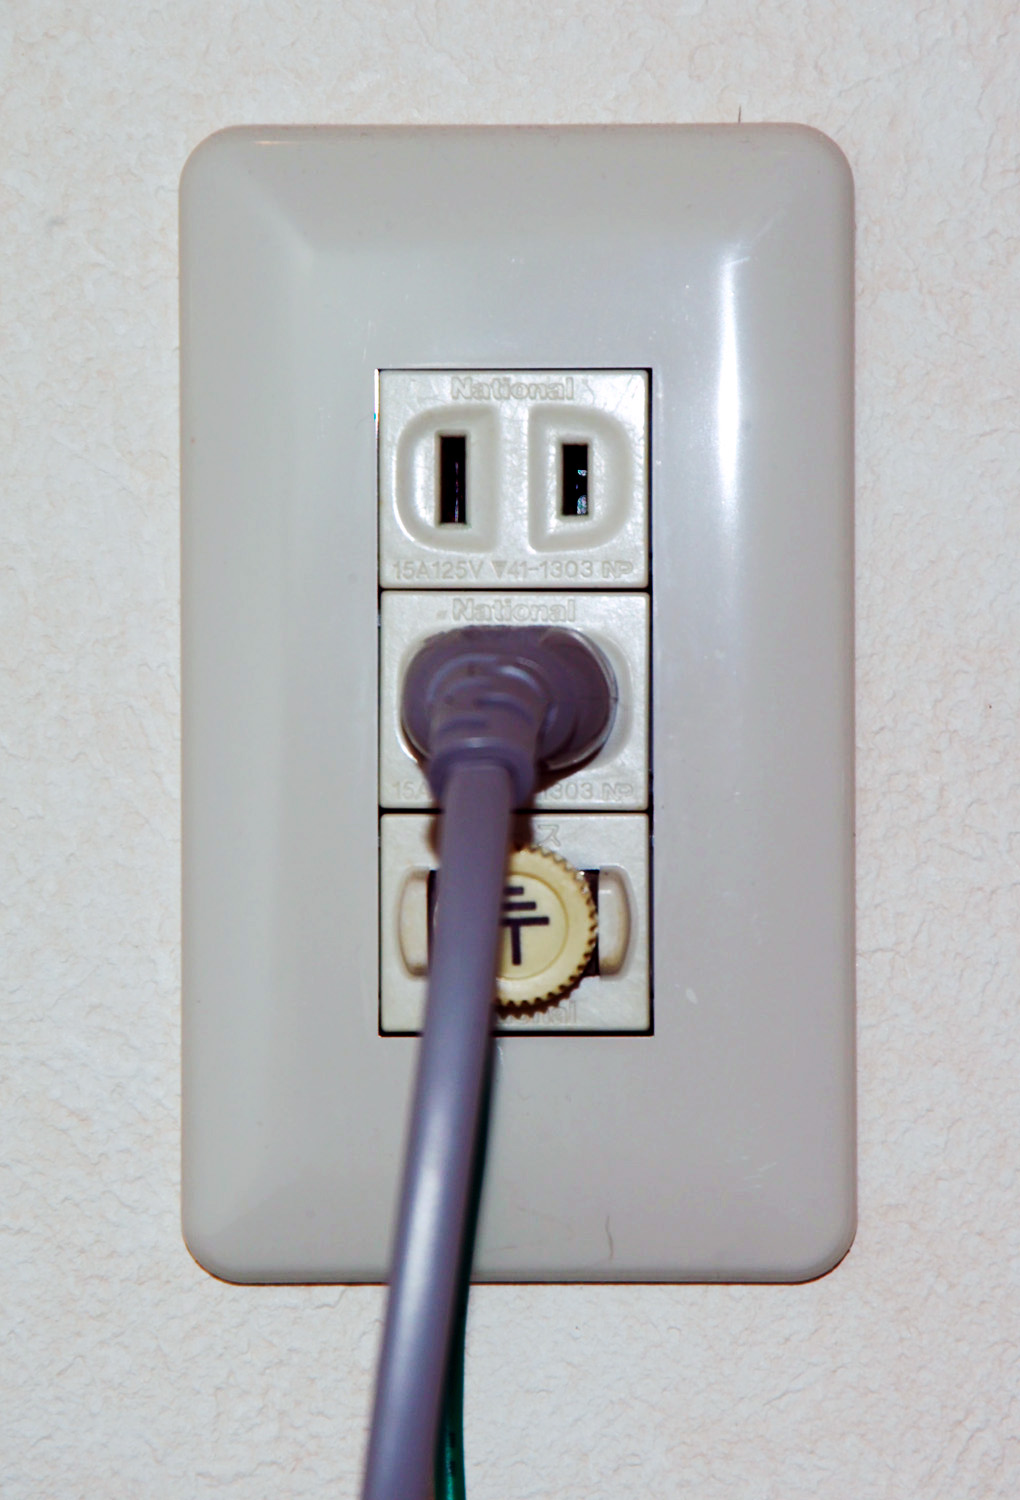 Power cord - Wikipedia